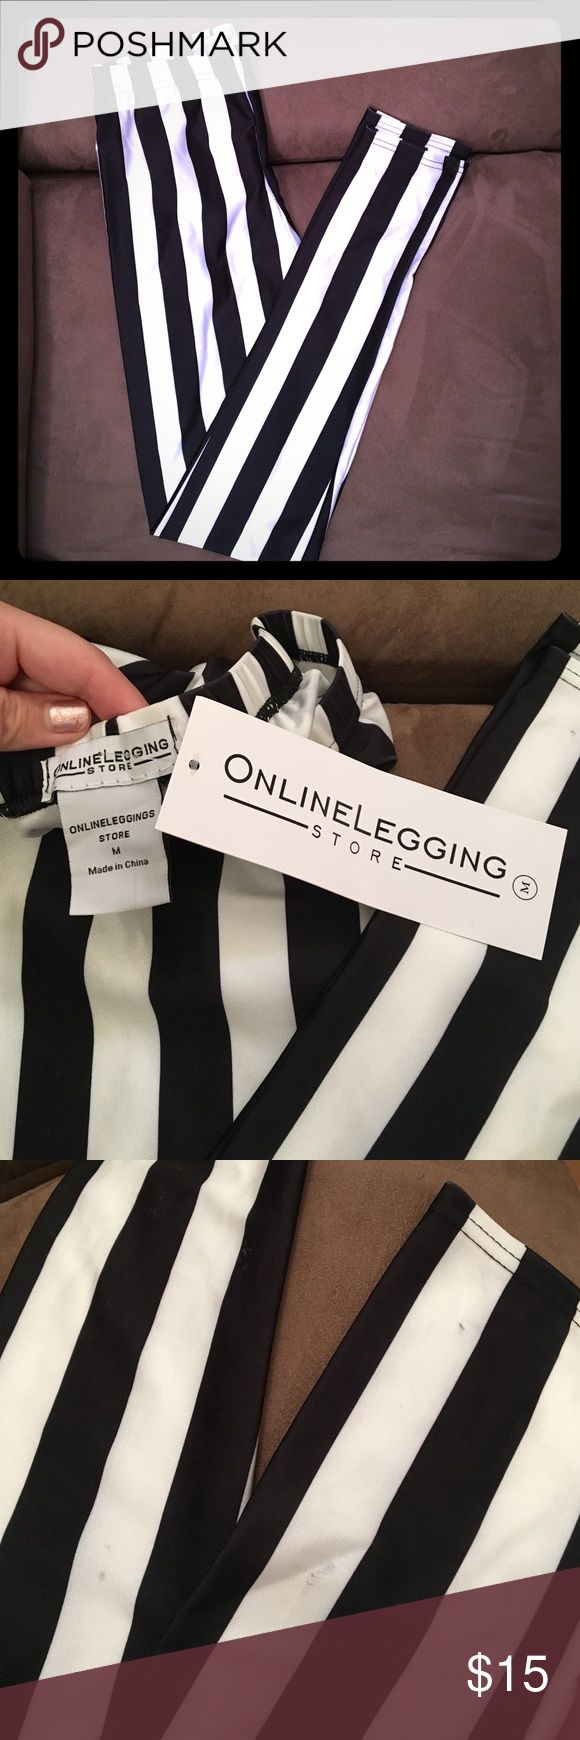 NWT Black & White Vertical Striped Leggings New with tags gorgeous stretchy black and white stripped leggings. Looks killer with a pair of black heels! Also can dress down with flats/sandals. Also can work as killer workout attire. Vertical stripes are very slimming elongating your legs. Did receive with minor defects shown in third photo. Price reflects. Tags still attached. No PayPal or Trading Online Legging Store Pants Leggings